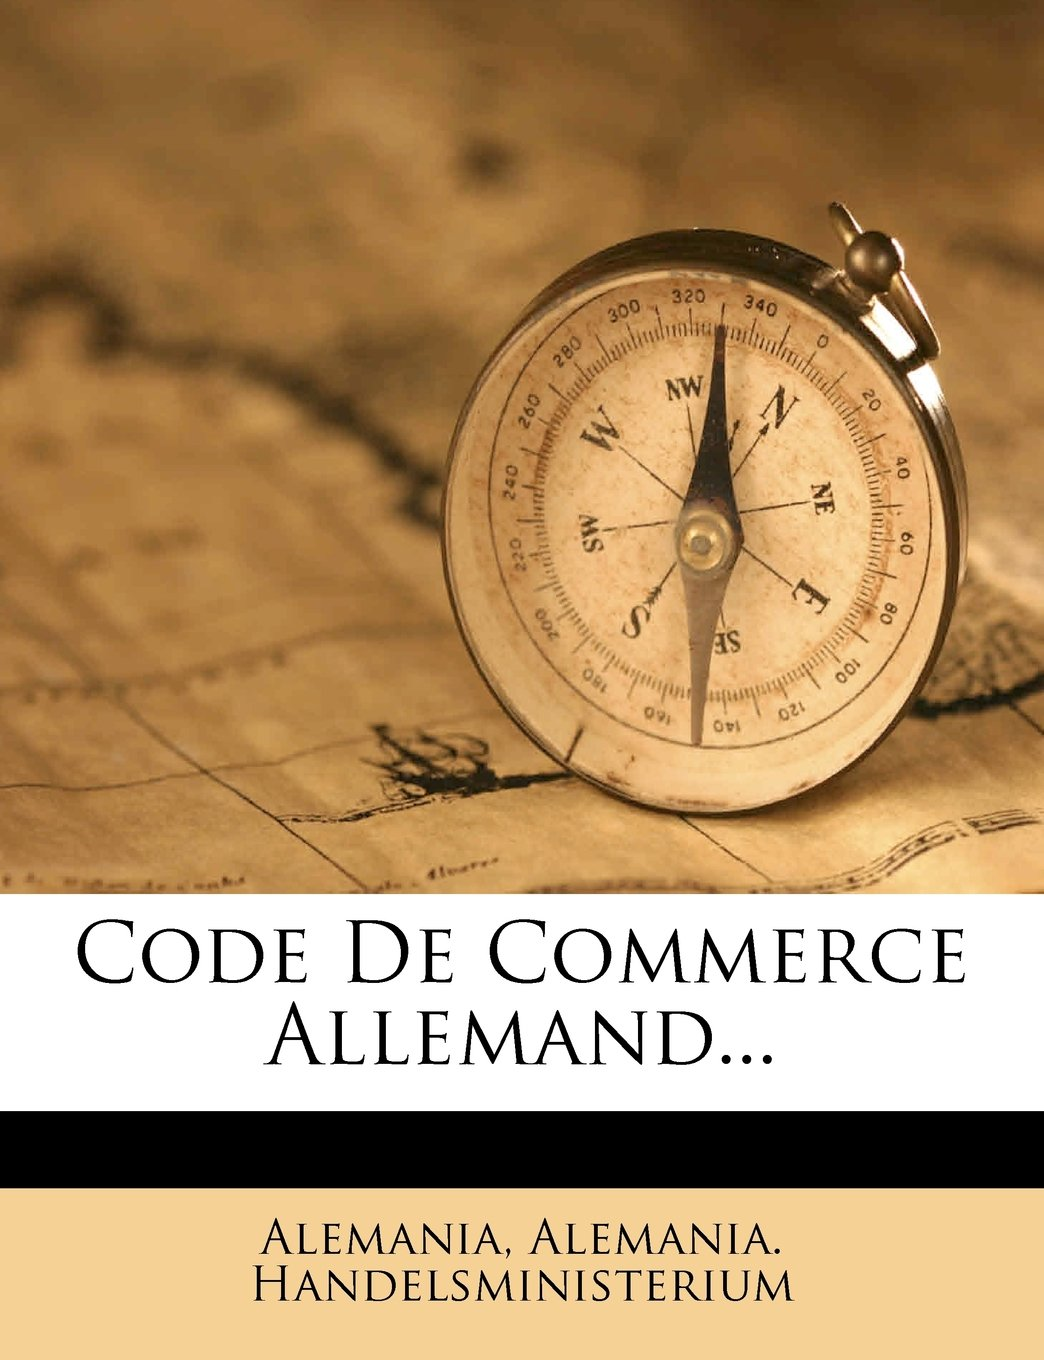 Code de Commerce Allemand. Broché – 12 mars 2012 Alemania Handelsministerium Nabu Press 1277675562 History / General